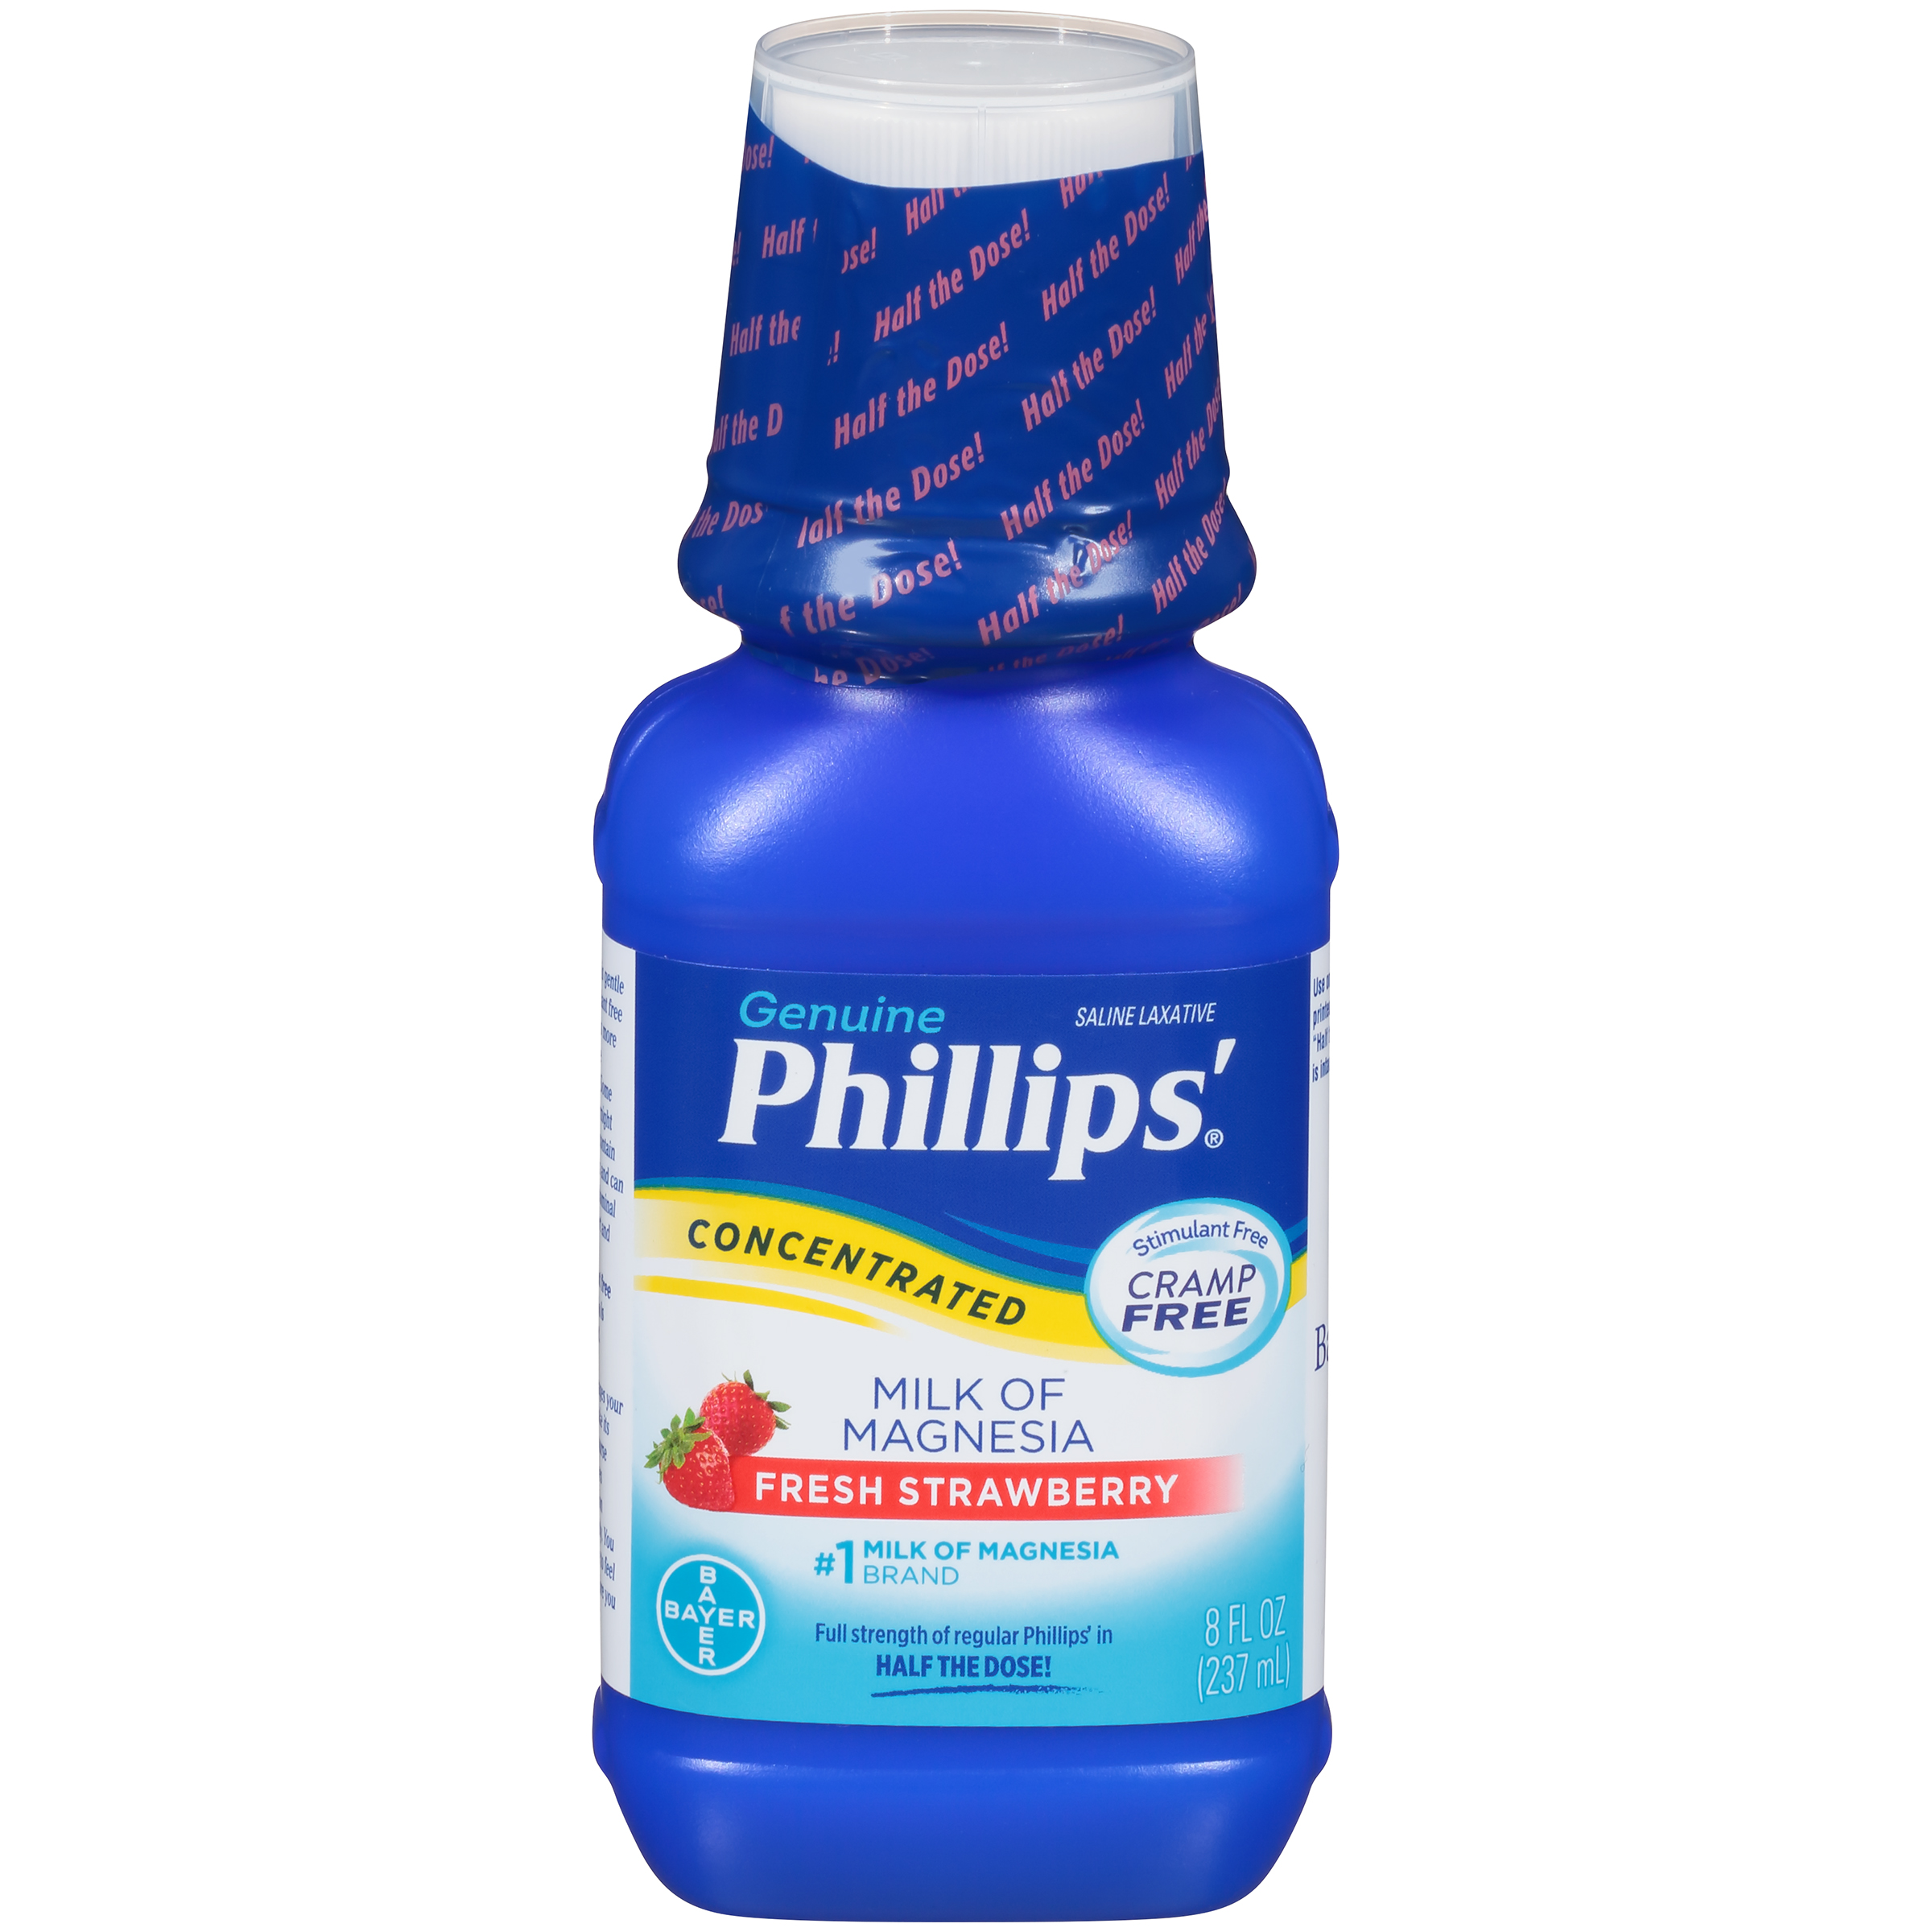 Phillips' Concentrated Milk of Magnesia Laxative, Fresh Strawberry, 8 Fl Oz